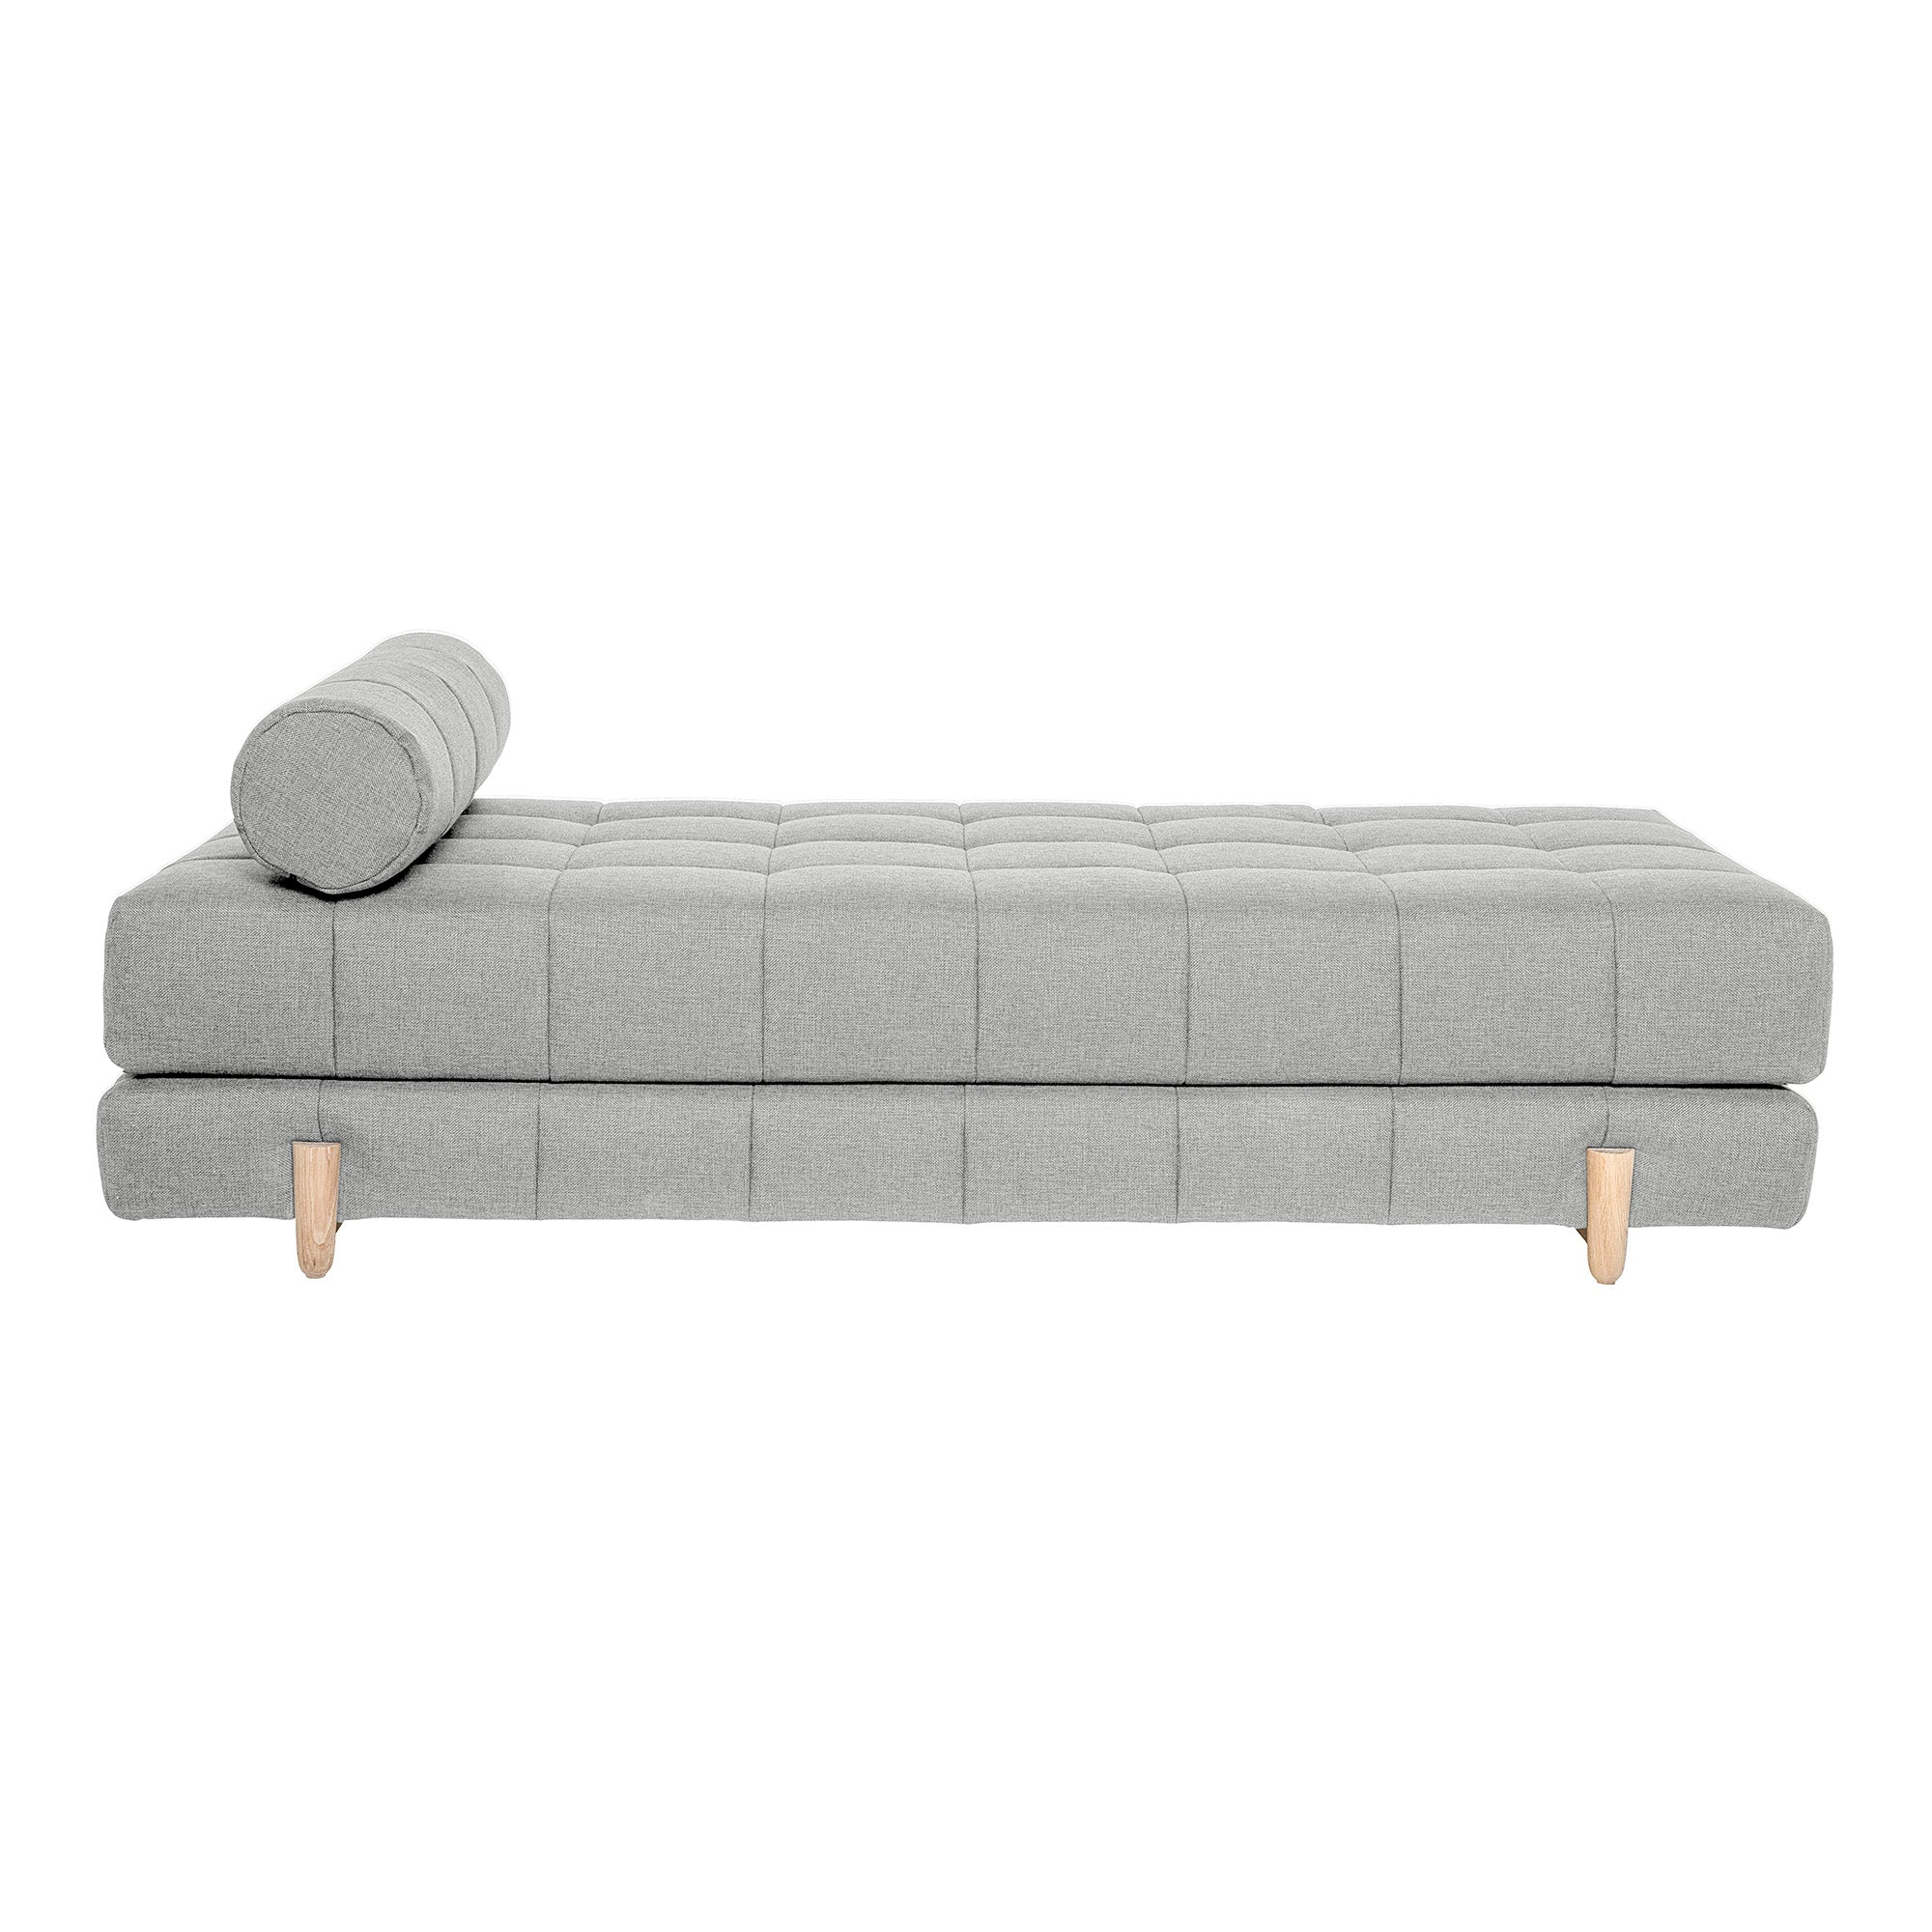 Image of   Bloomingville Bulky Daybed, Grå, Uld